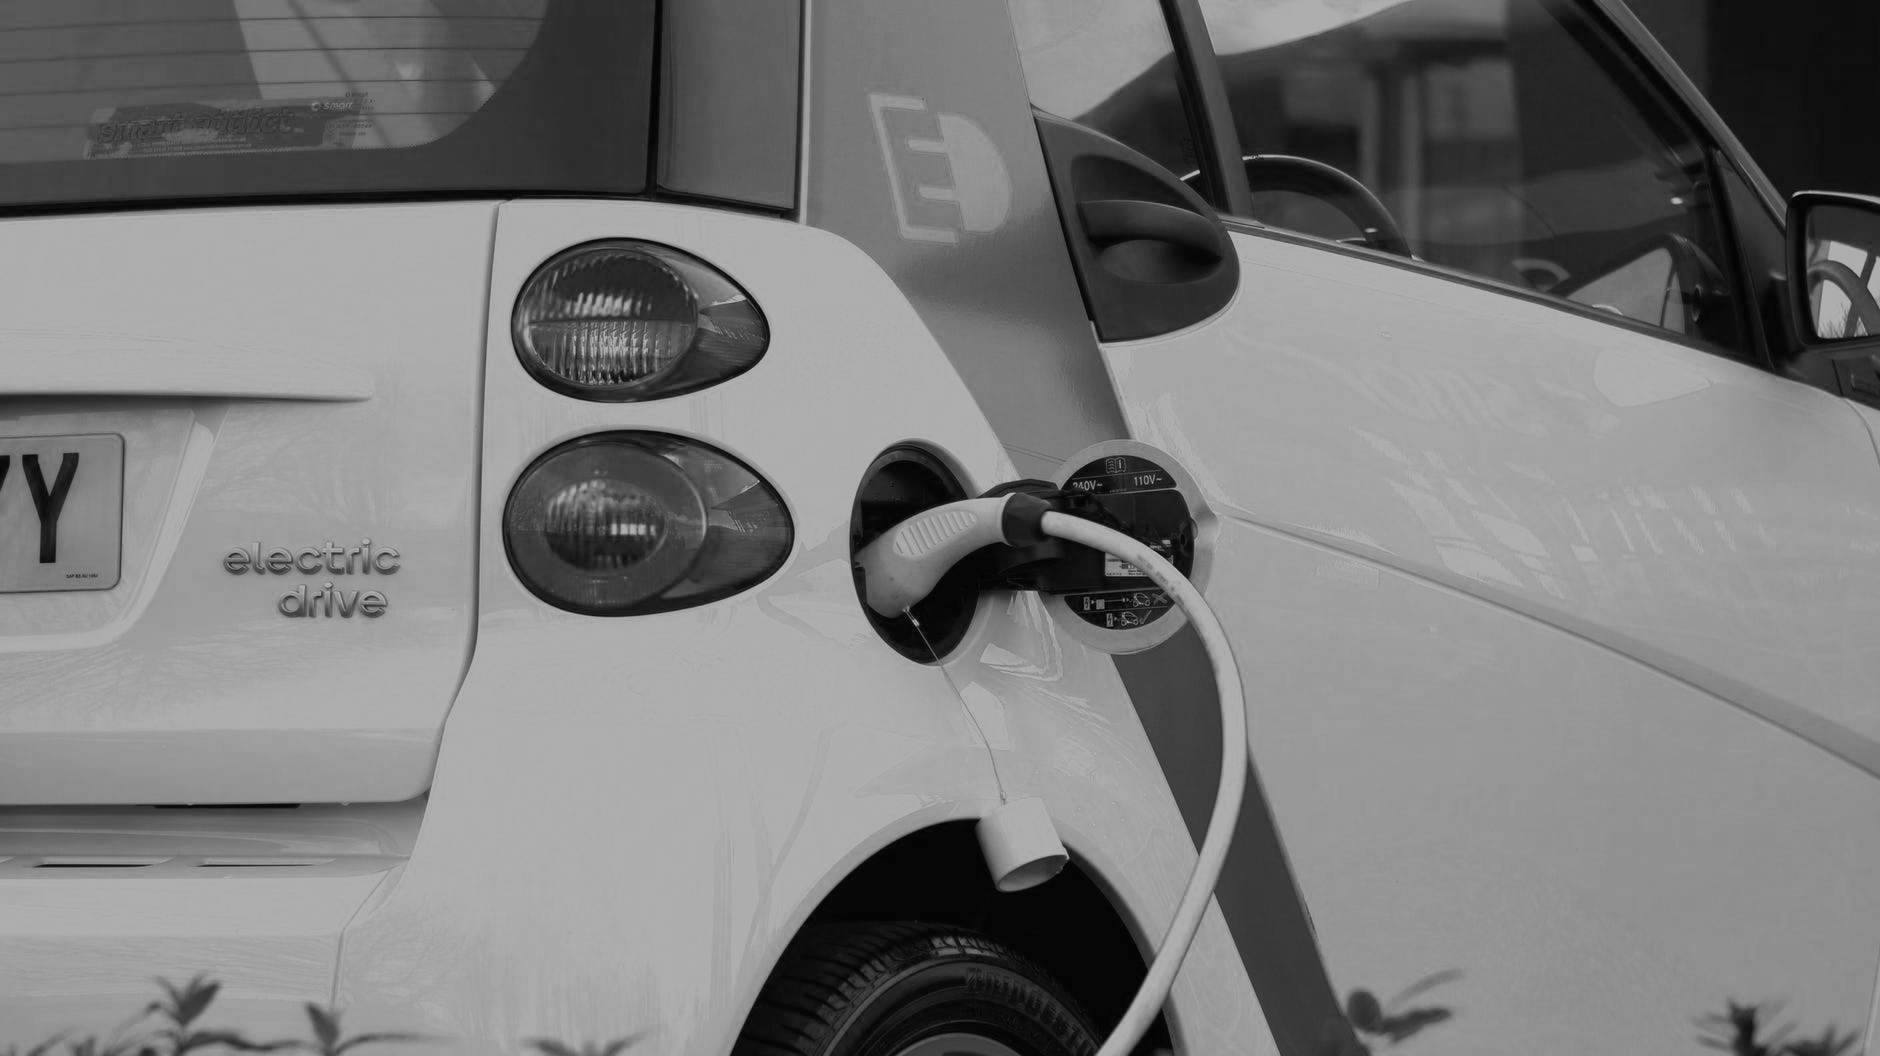 GOOD ENERGY TAKES STAKE IN ELECTRIC VEHICLE BUSINESS -